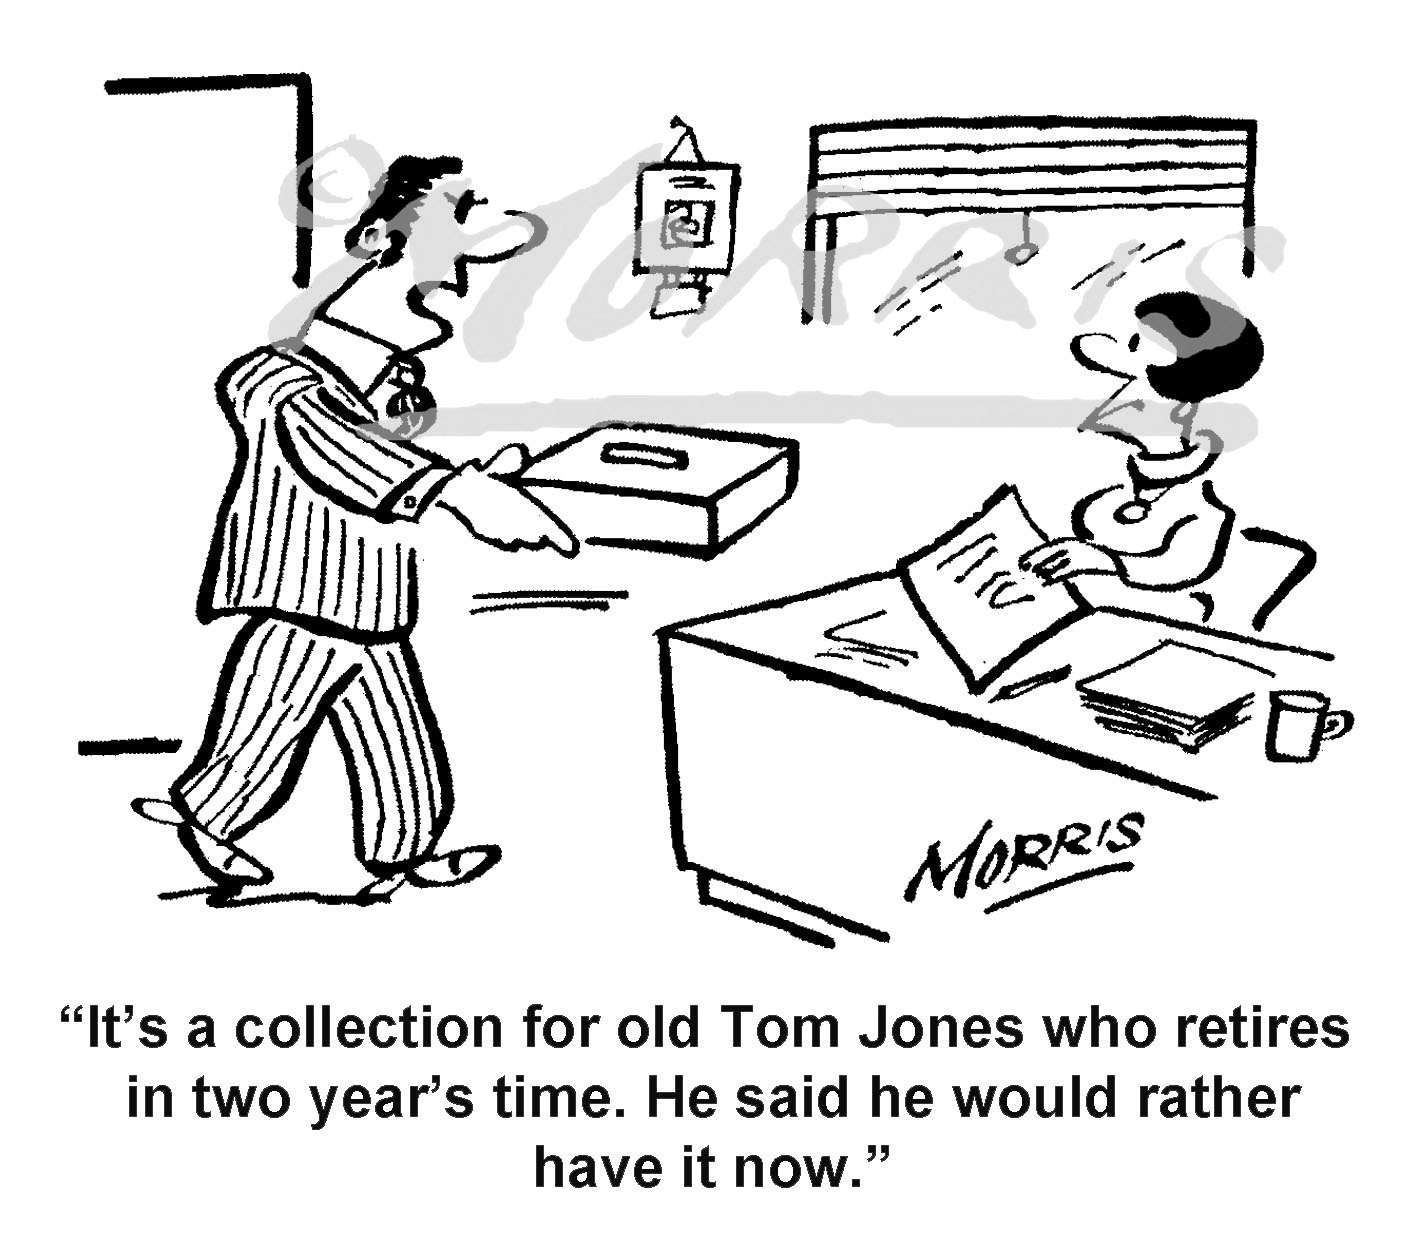 Retirement early collection cartoon – Ref: 8477bw